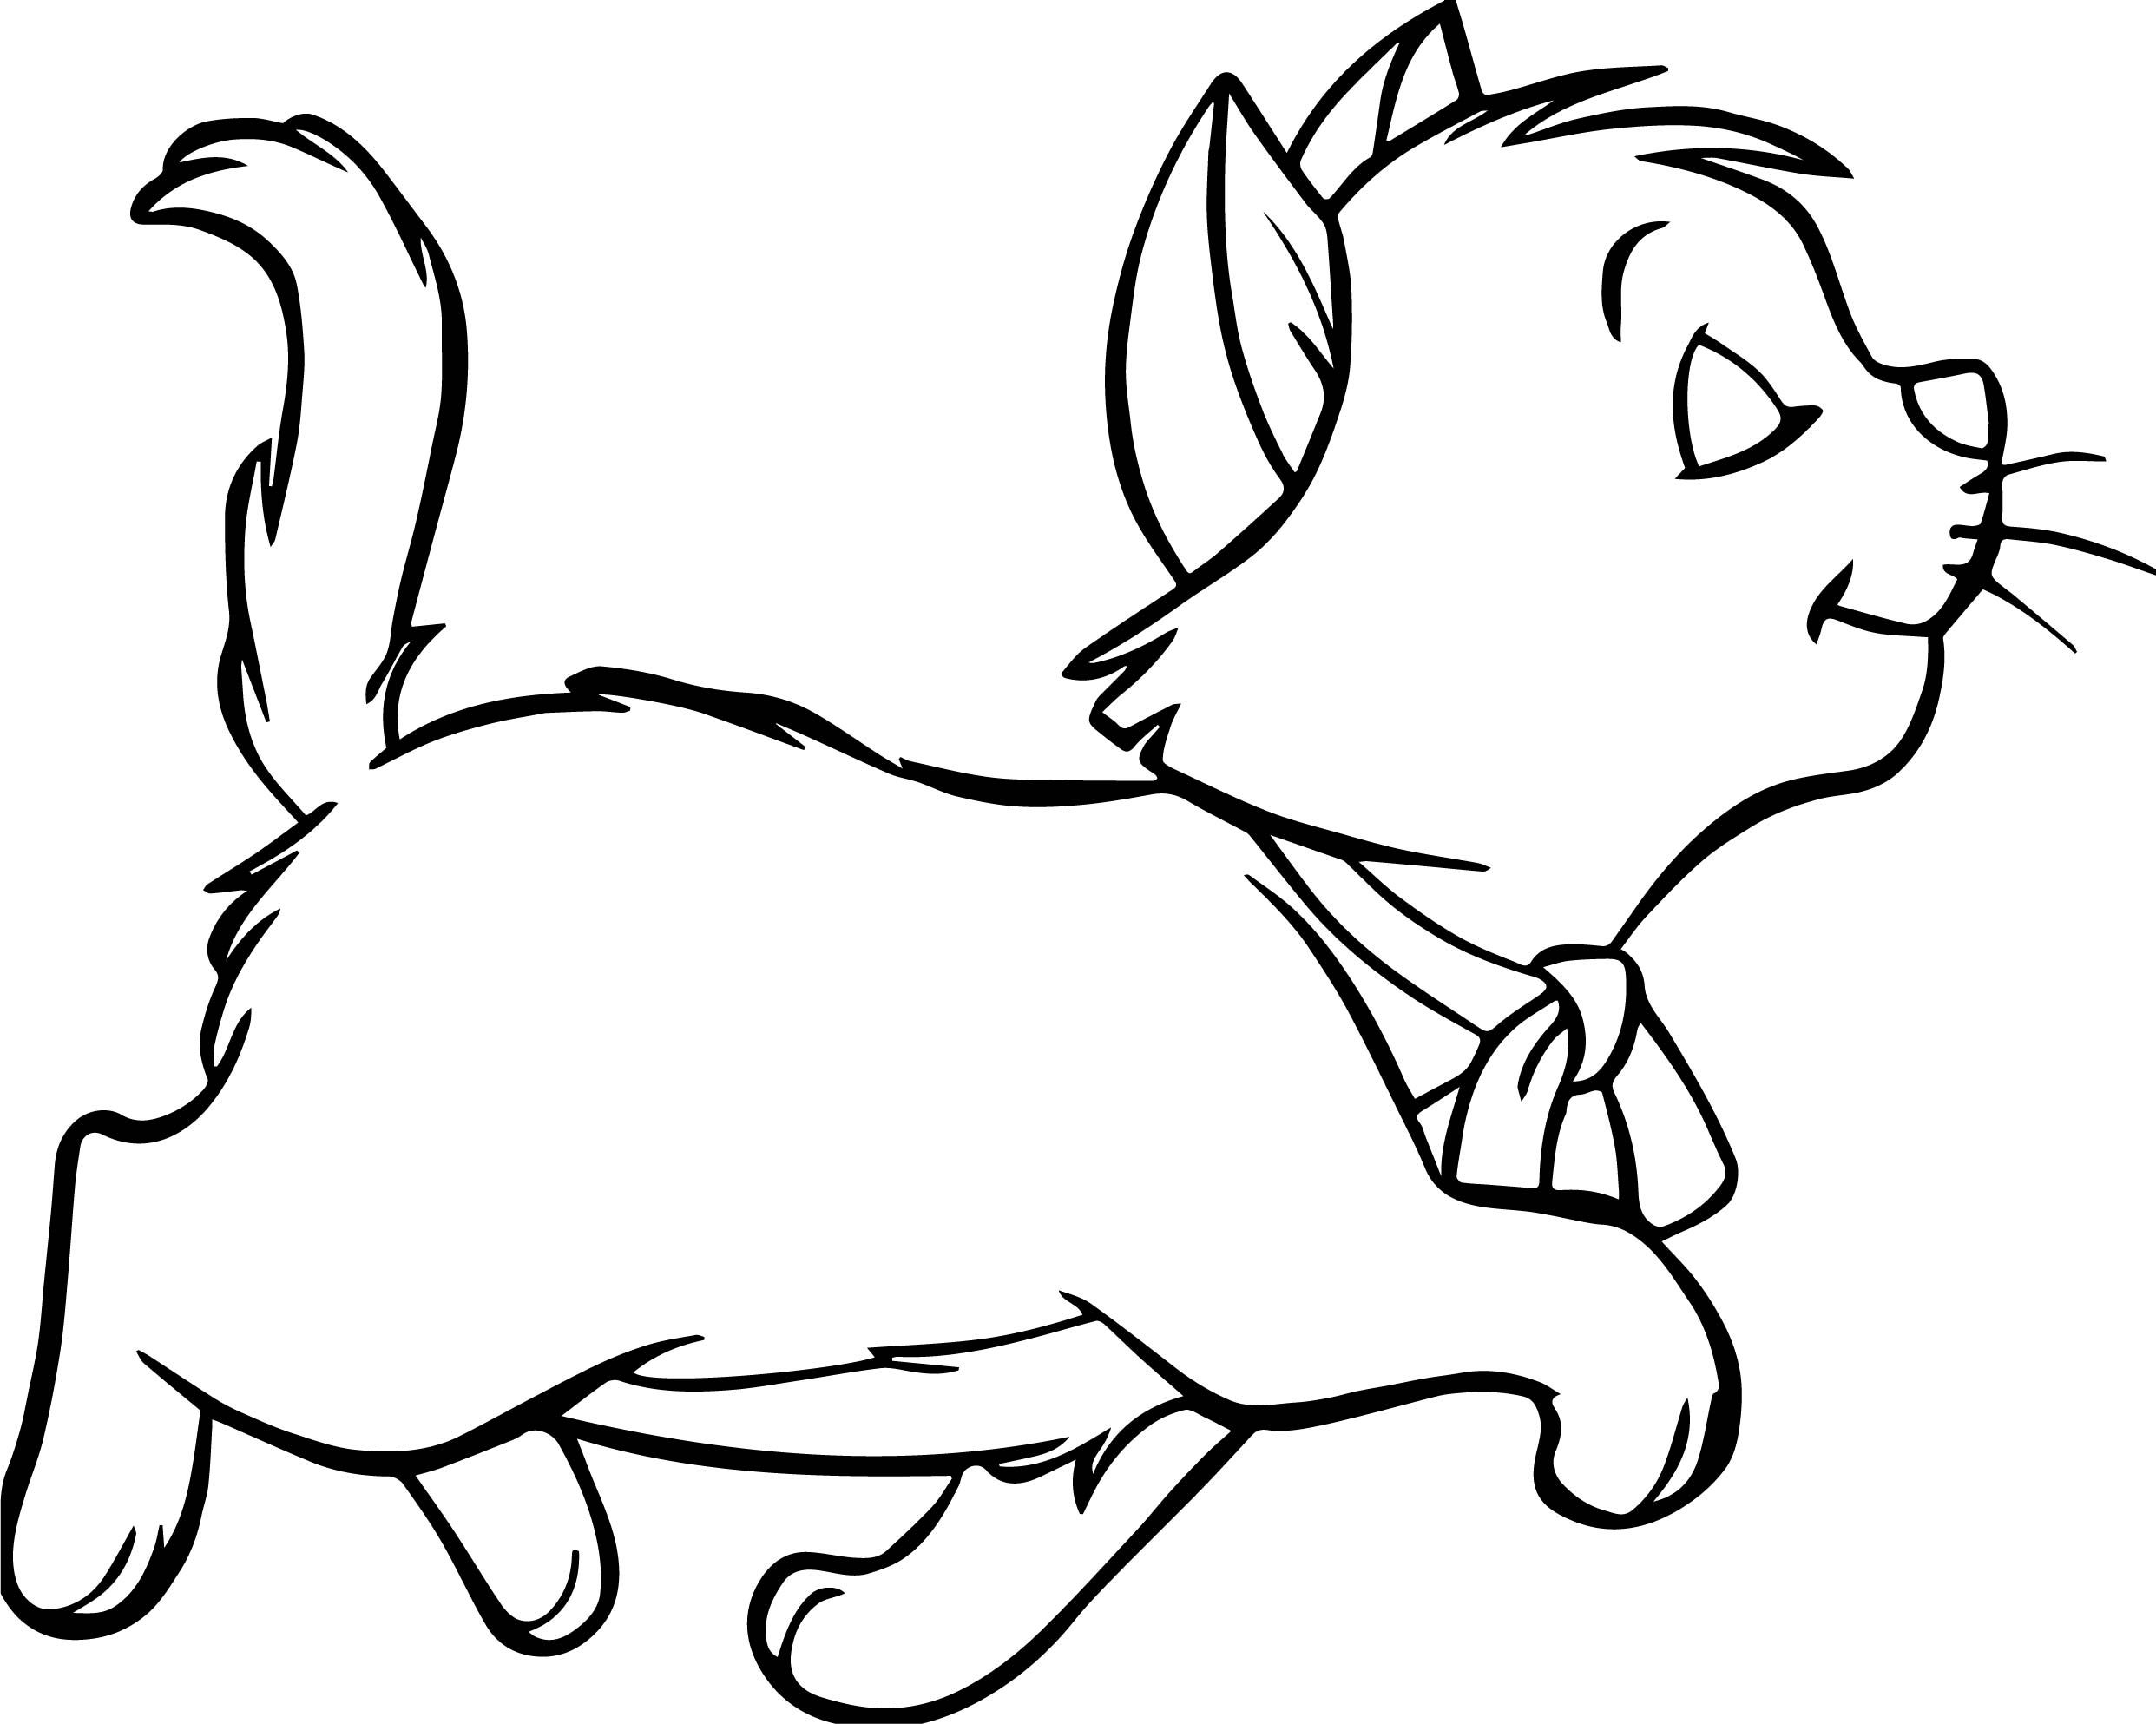 Walking Disney The Aristocats Coloring Page Cartoon Coloring Pages Coloring Pages Aristocats